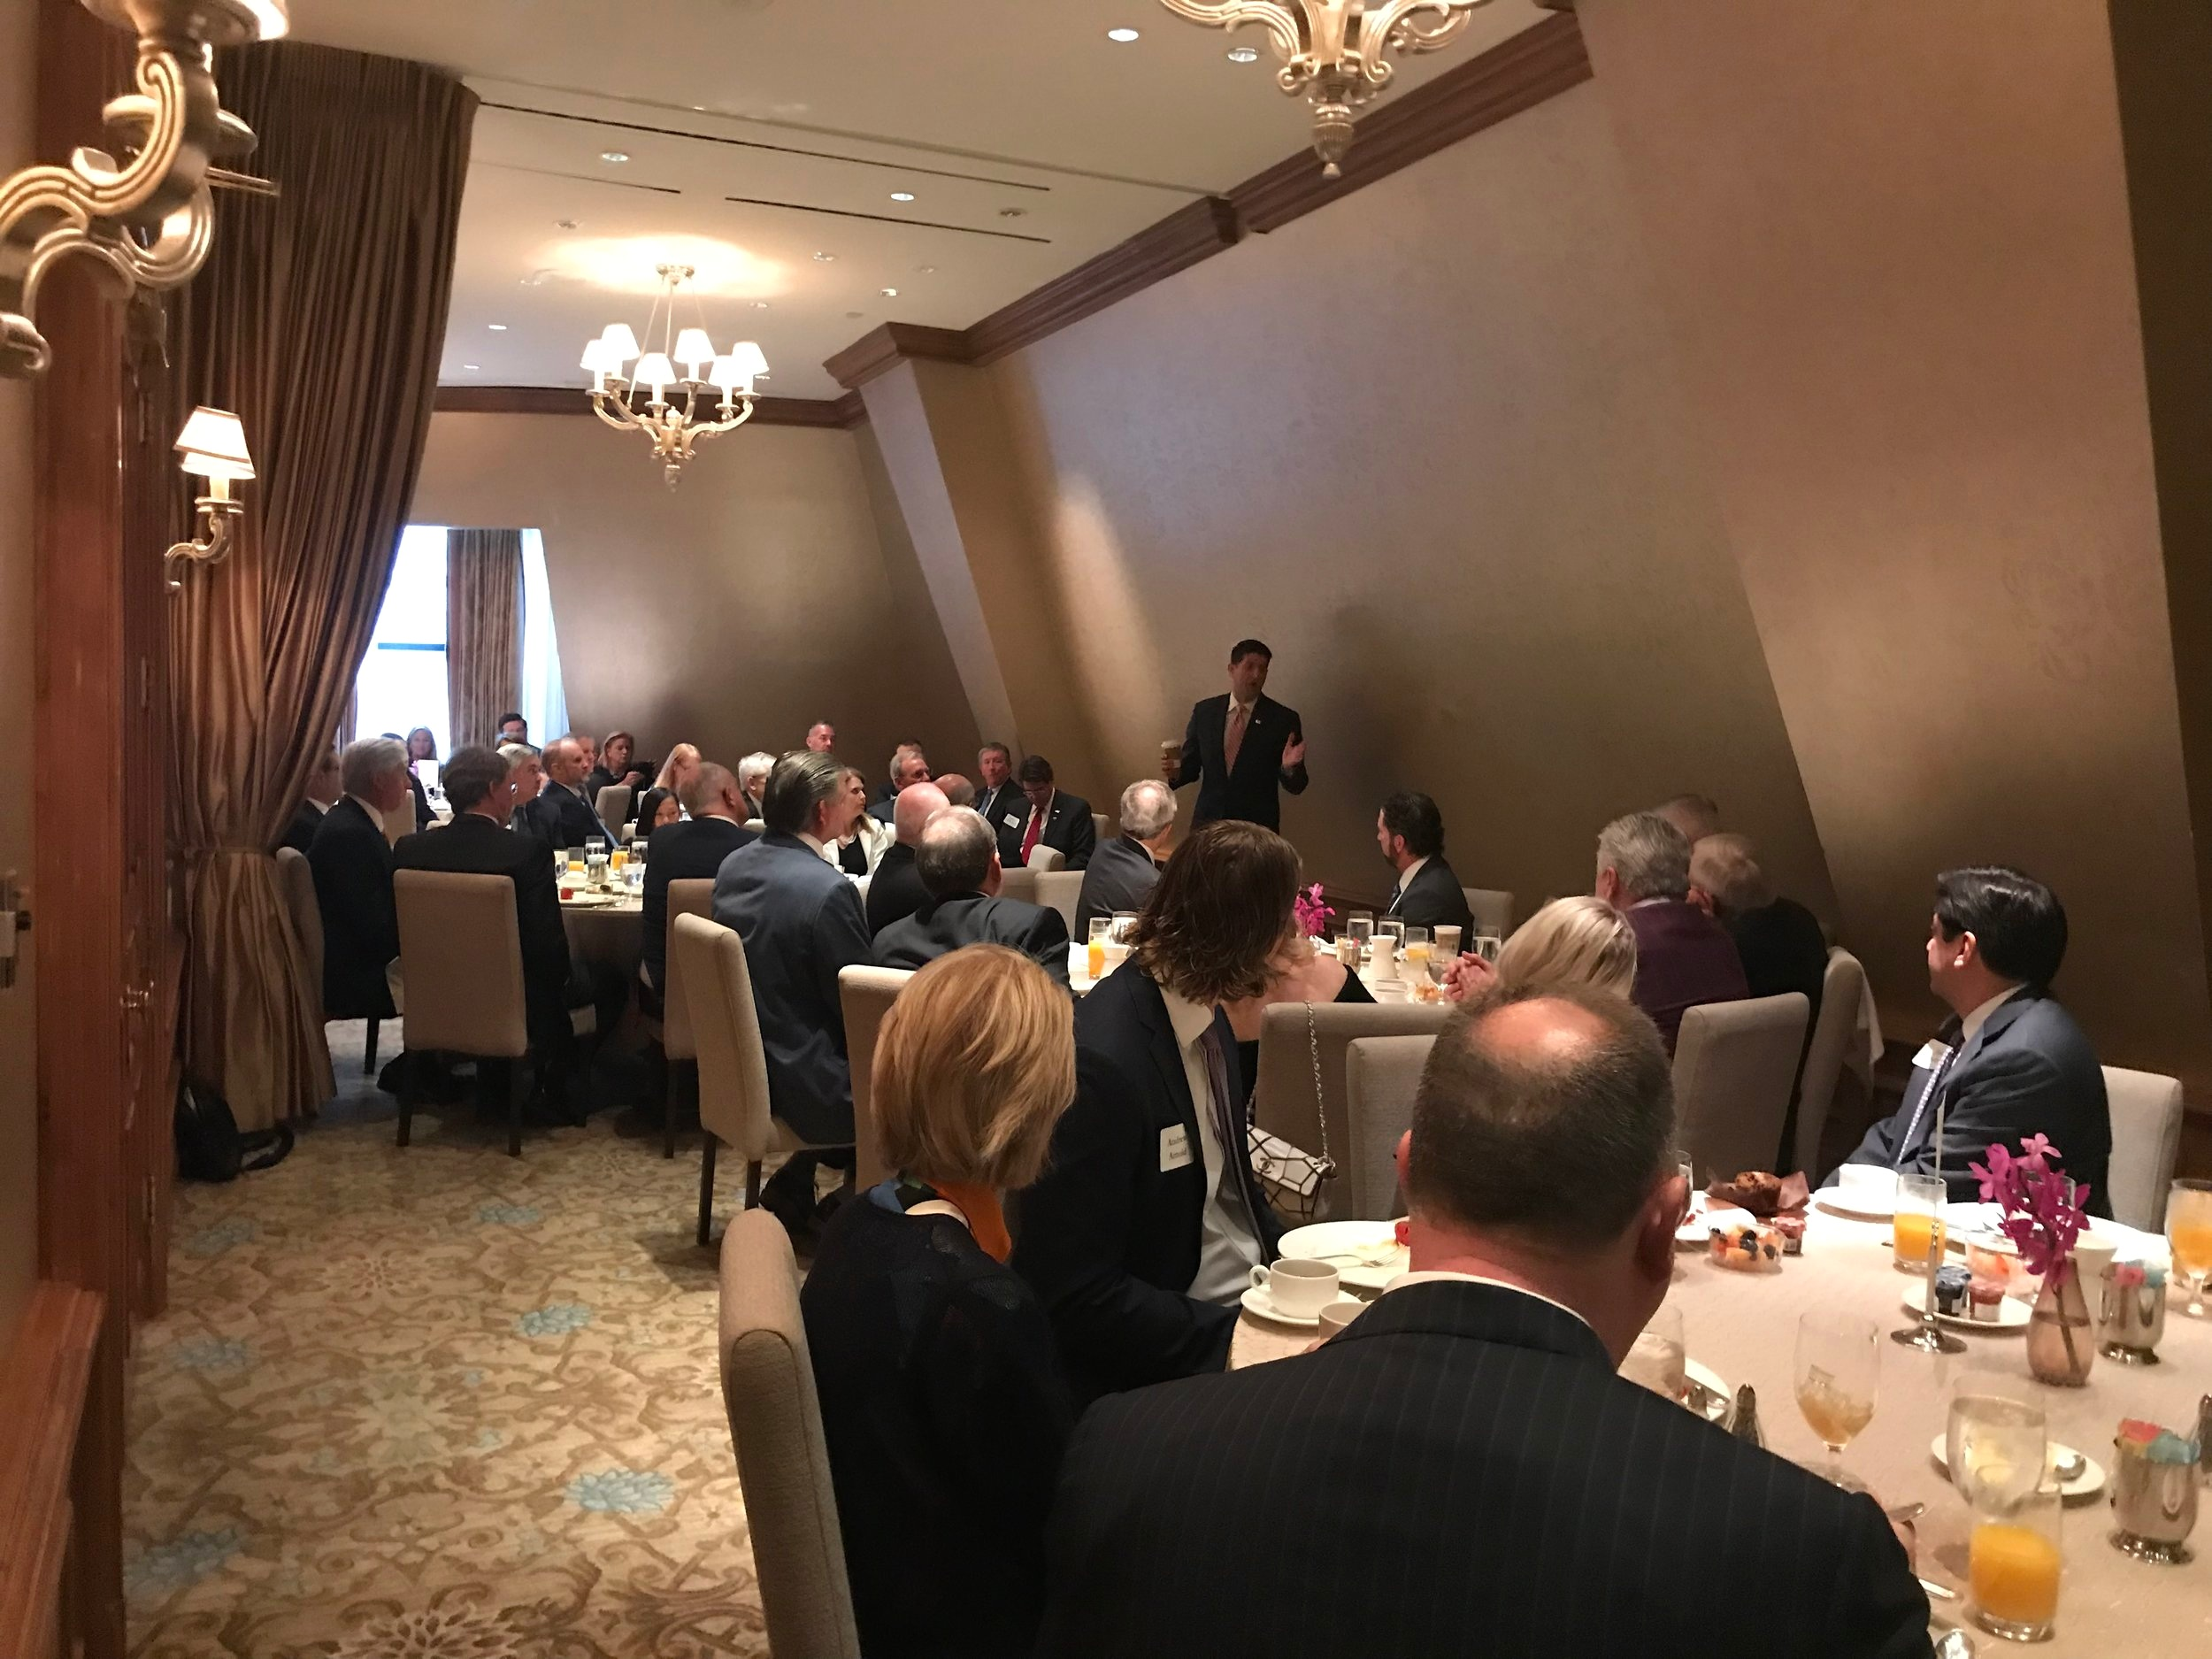 Breakfast fundraiser for Pete Sessions for Congress with Former Speaker Paul Ryan at the Crescent Club in 2018.